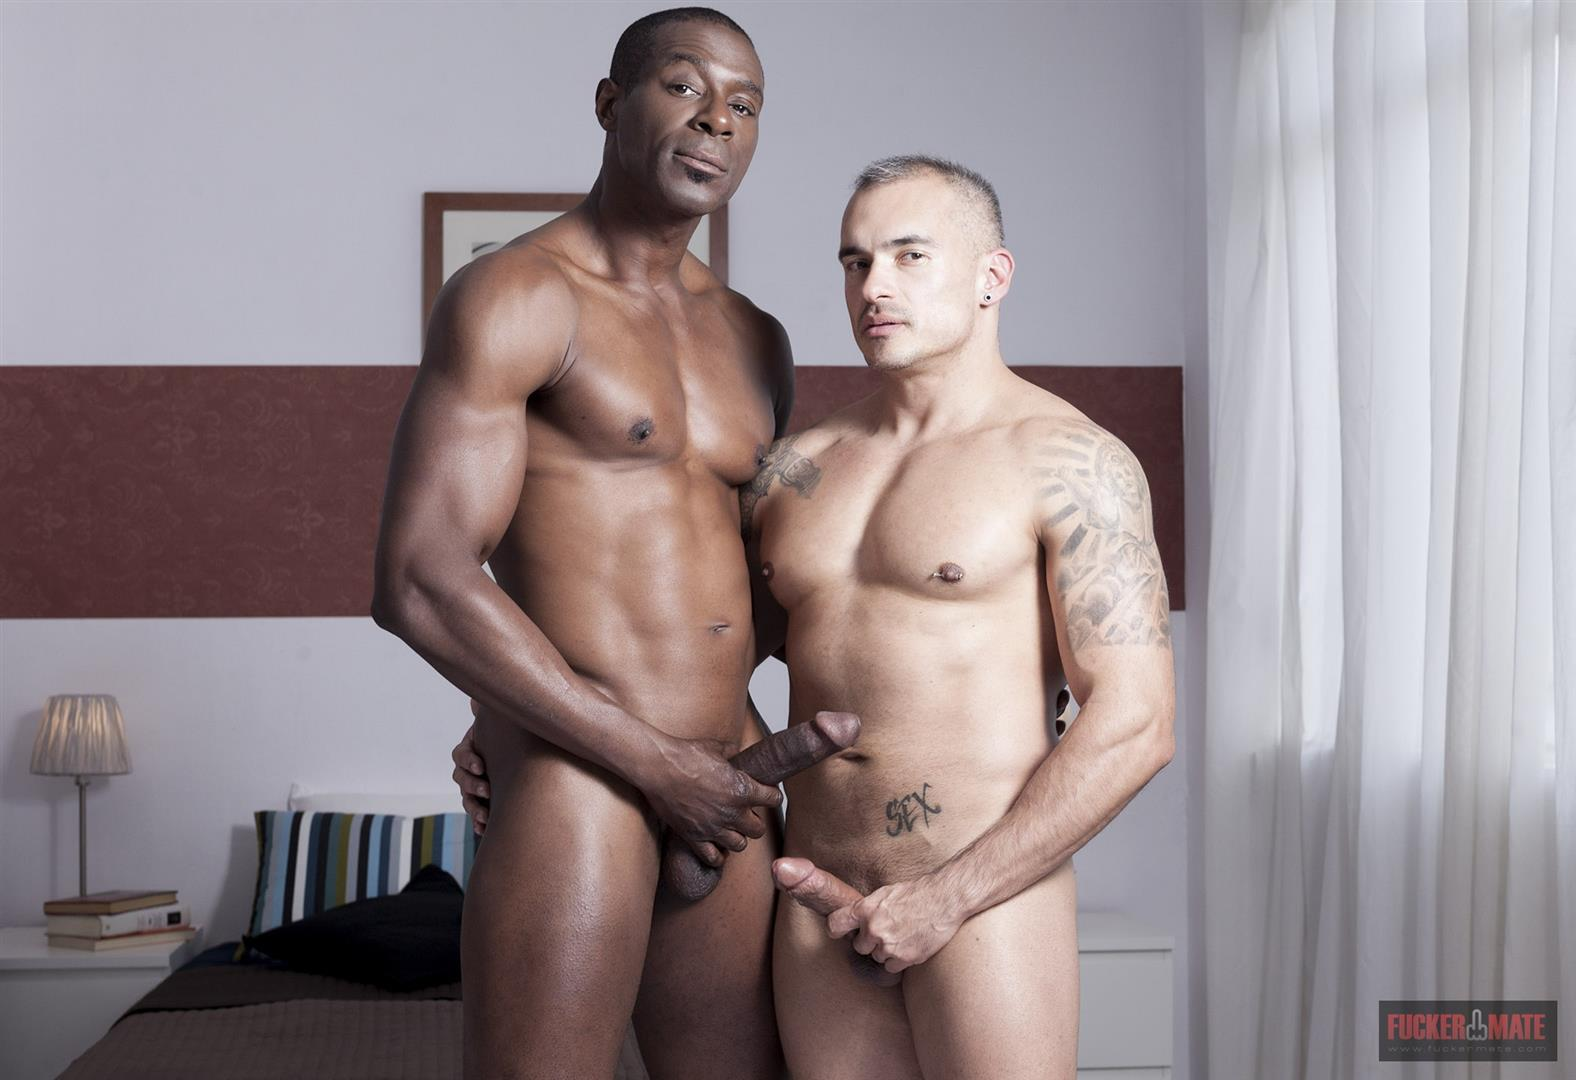 Fuckermate Titan and Santi Noguera Big Black Dick Barebacking Muscle Bottom Amateur Gay Porn 2 Big Black Horse Cock Aggressively Fucks A White Muscle Bottom